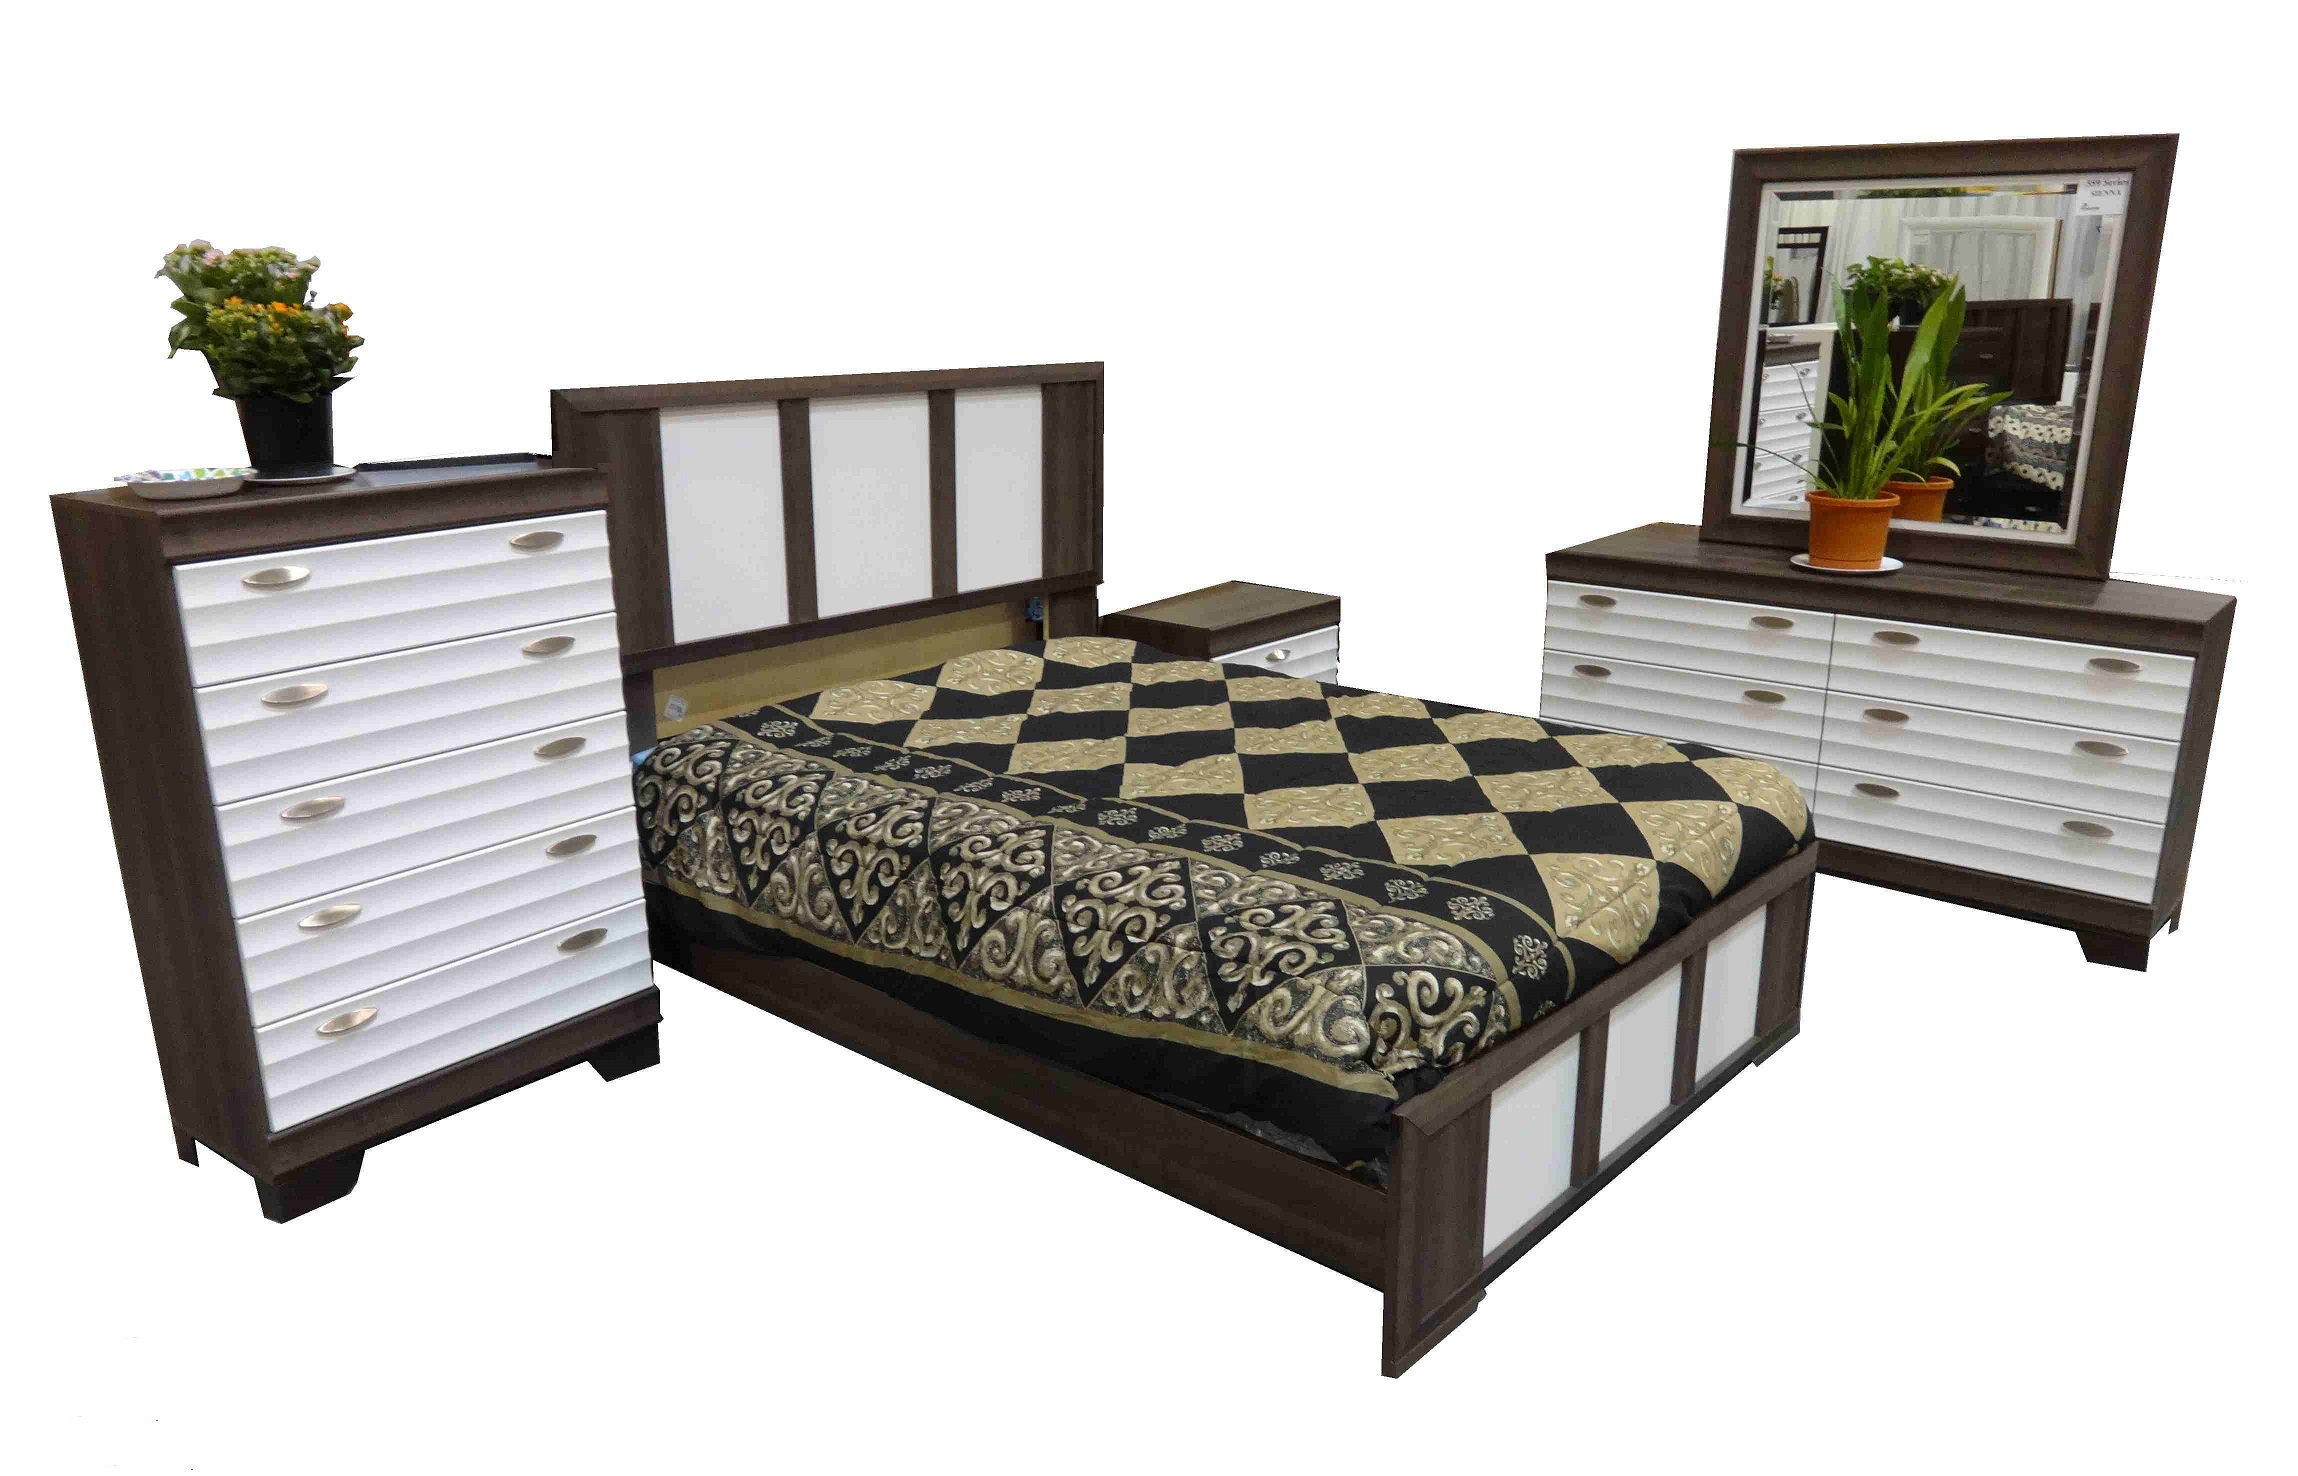 559 SERIES - SIENNA QUEEN BEDROOM SUITE IN 2 TONE